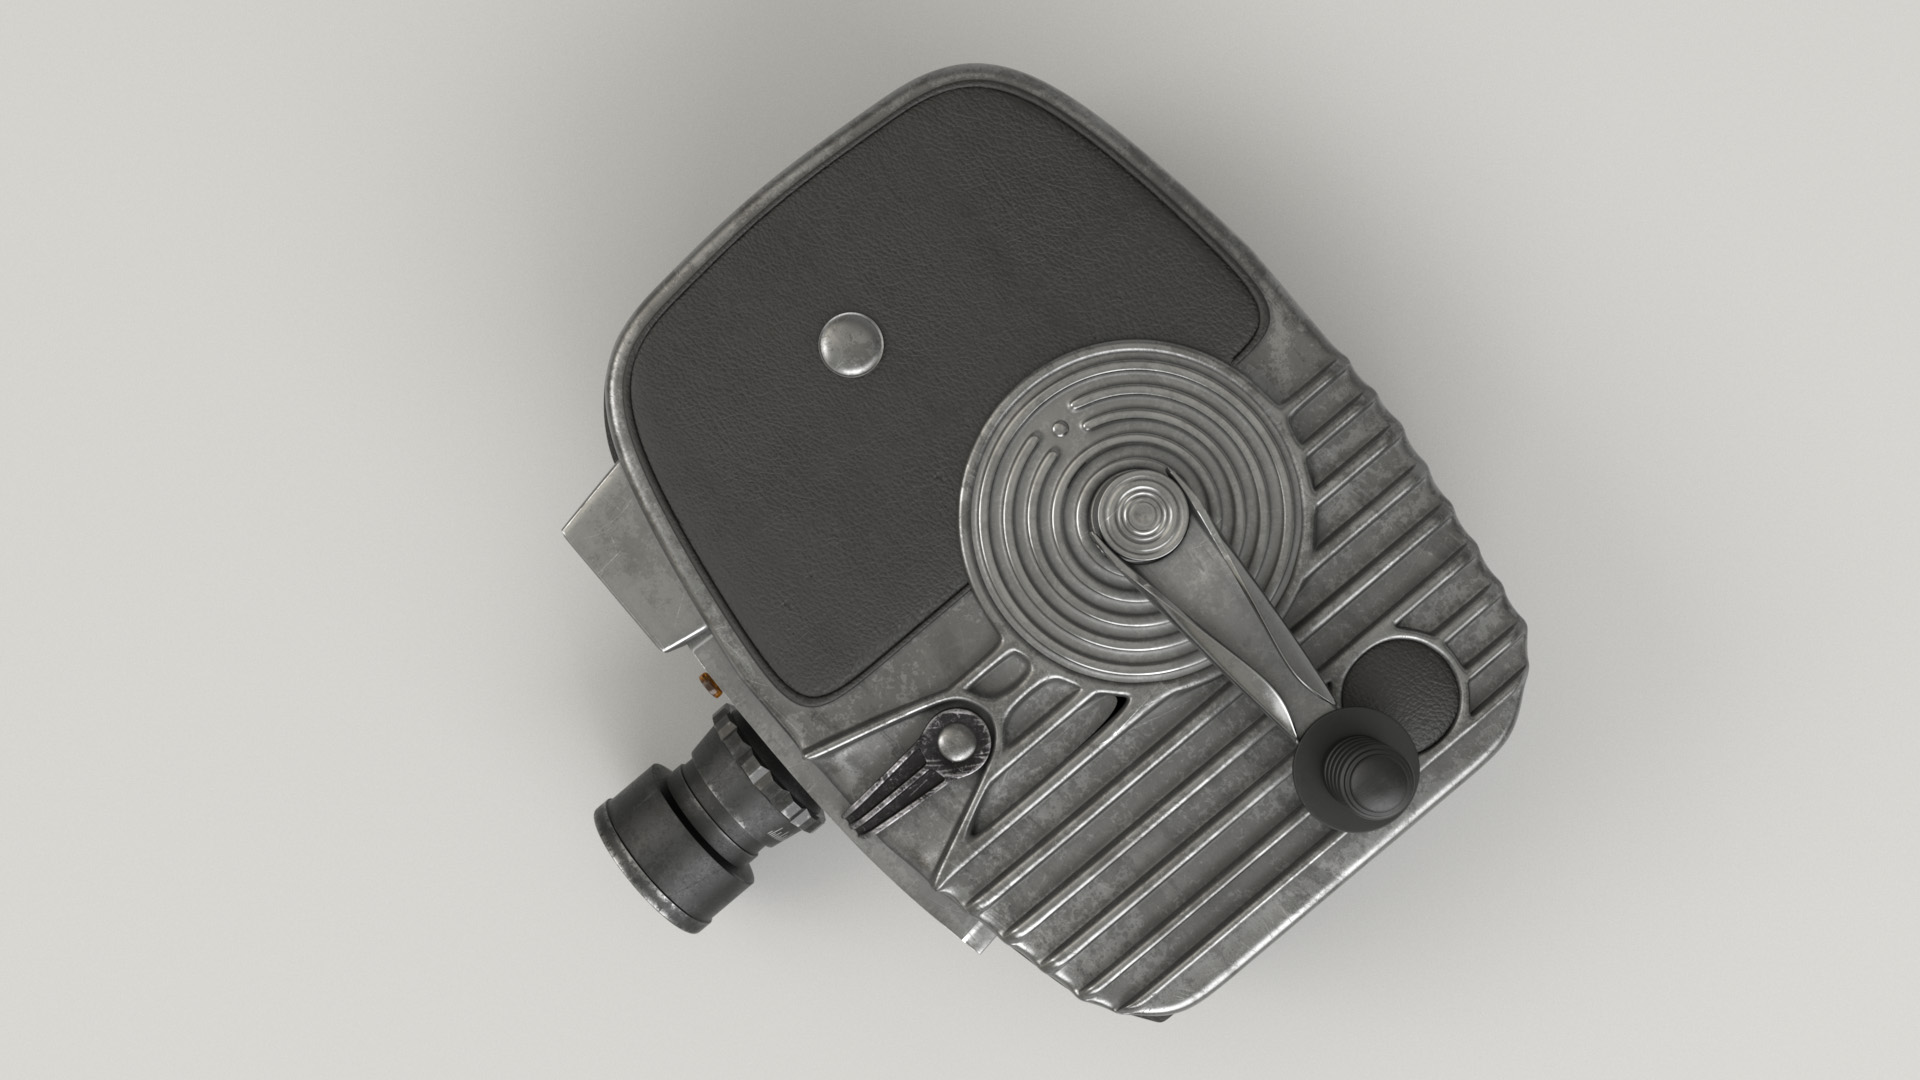 Figure 23: Top view of the camera.